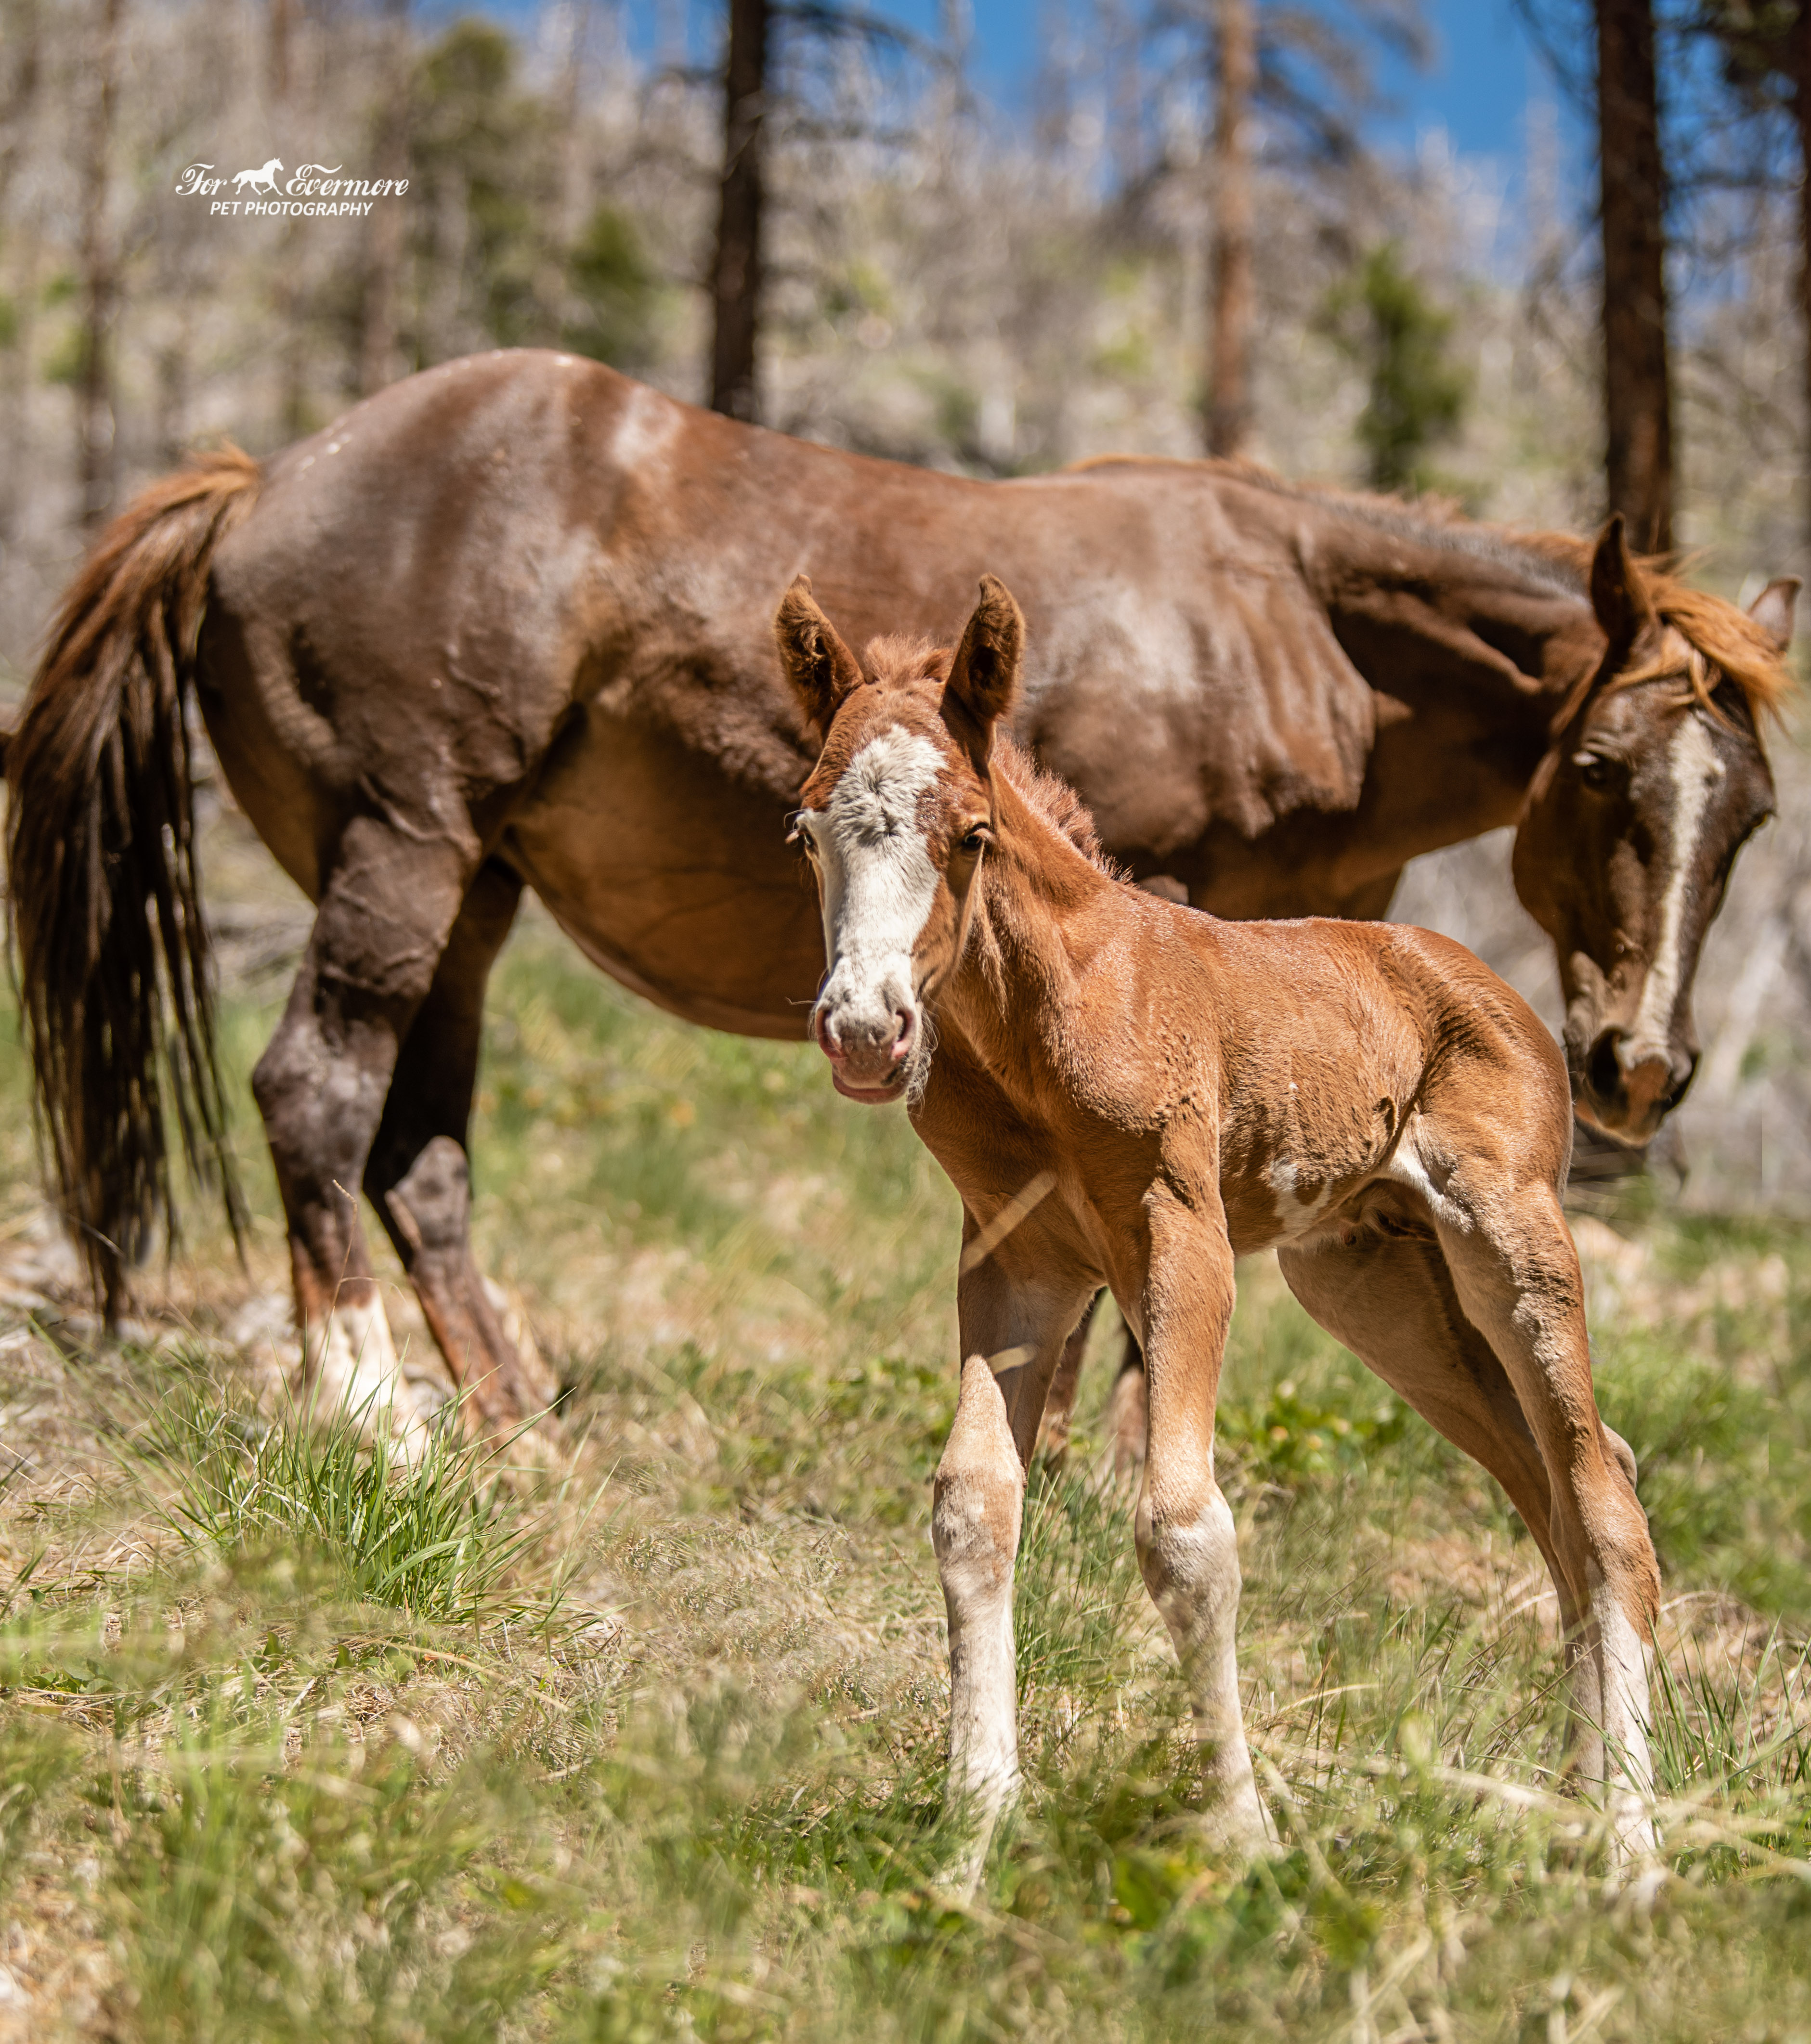 Five hours old wild colt I call Rory